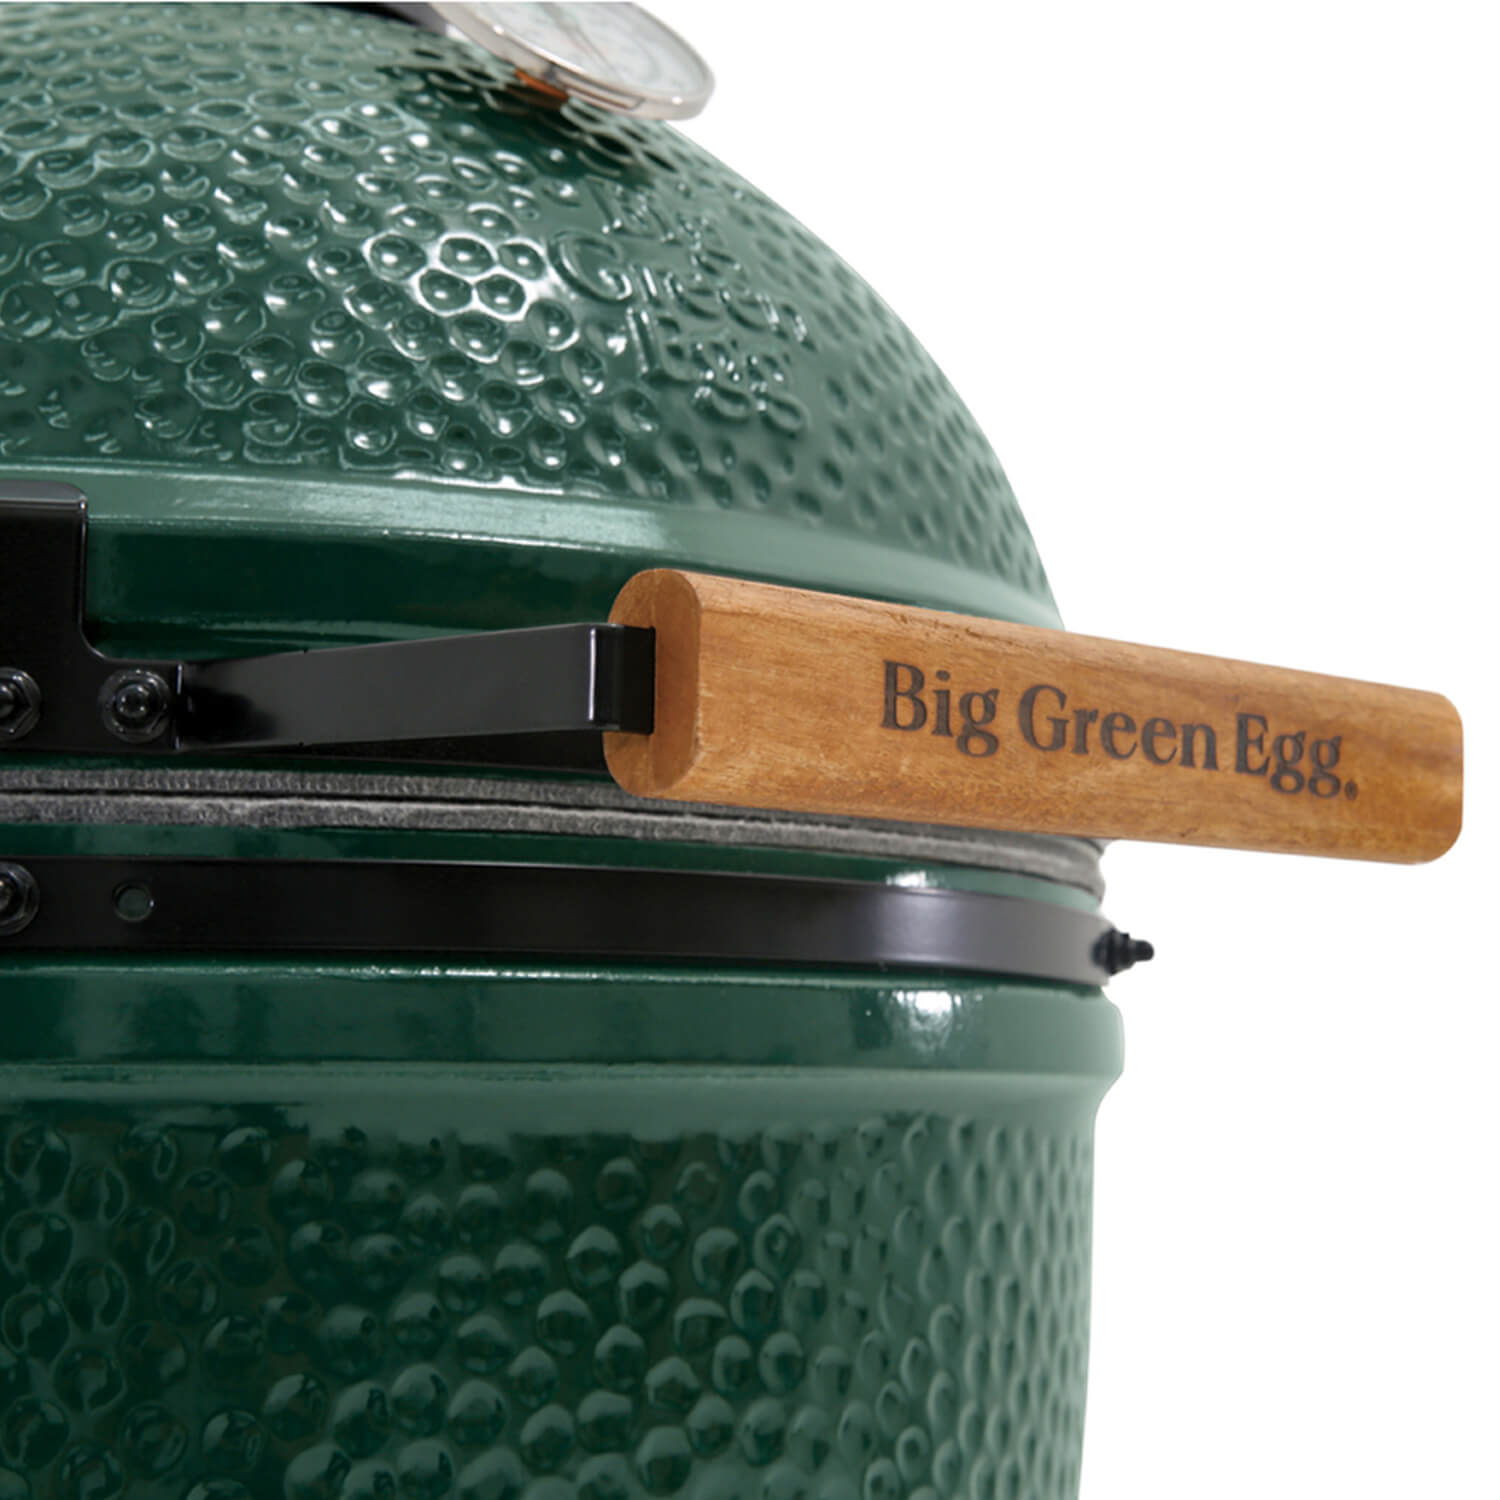 Medium BGE Original Kit